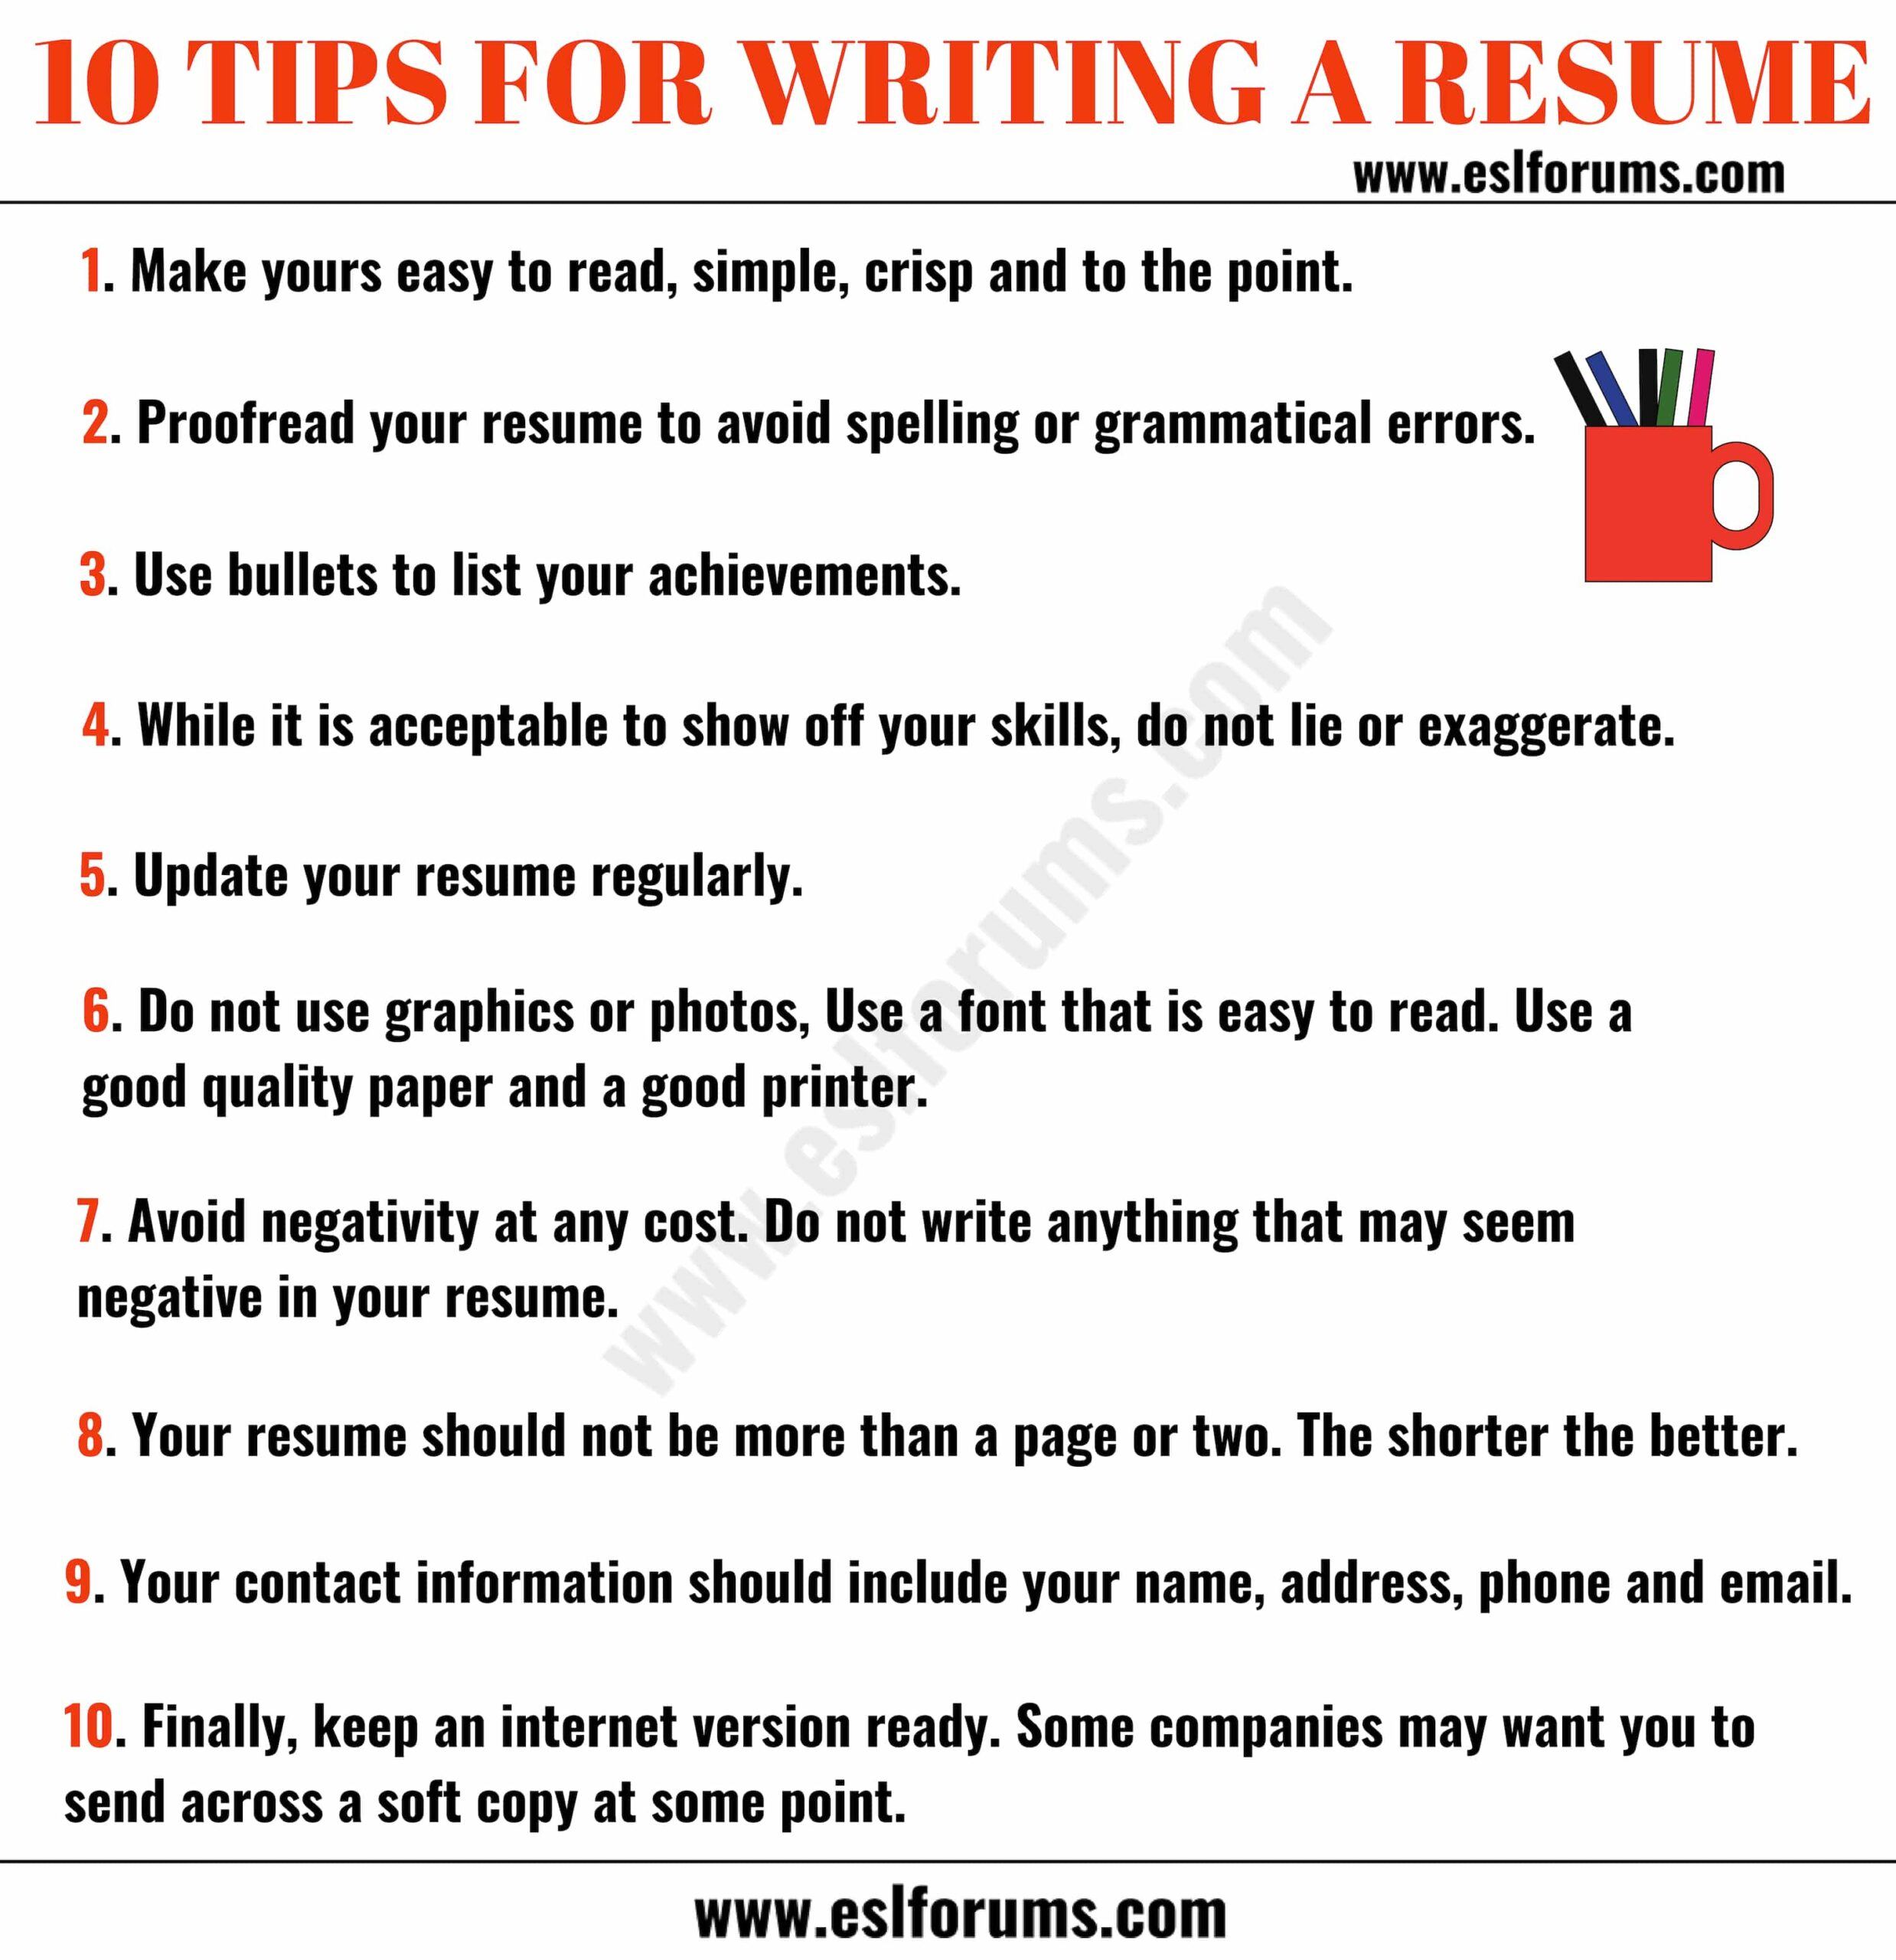 resume tips to write professional esl forums for writing great best profile headline Resume Tips For Writing A Great Resume